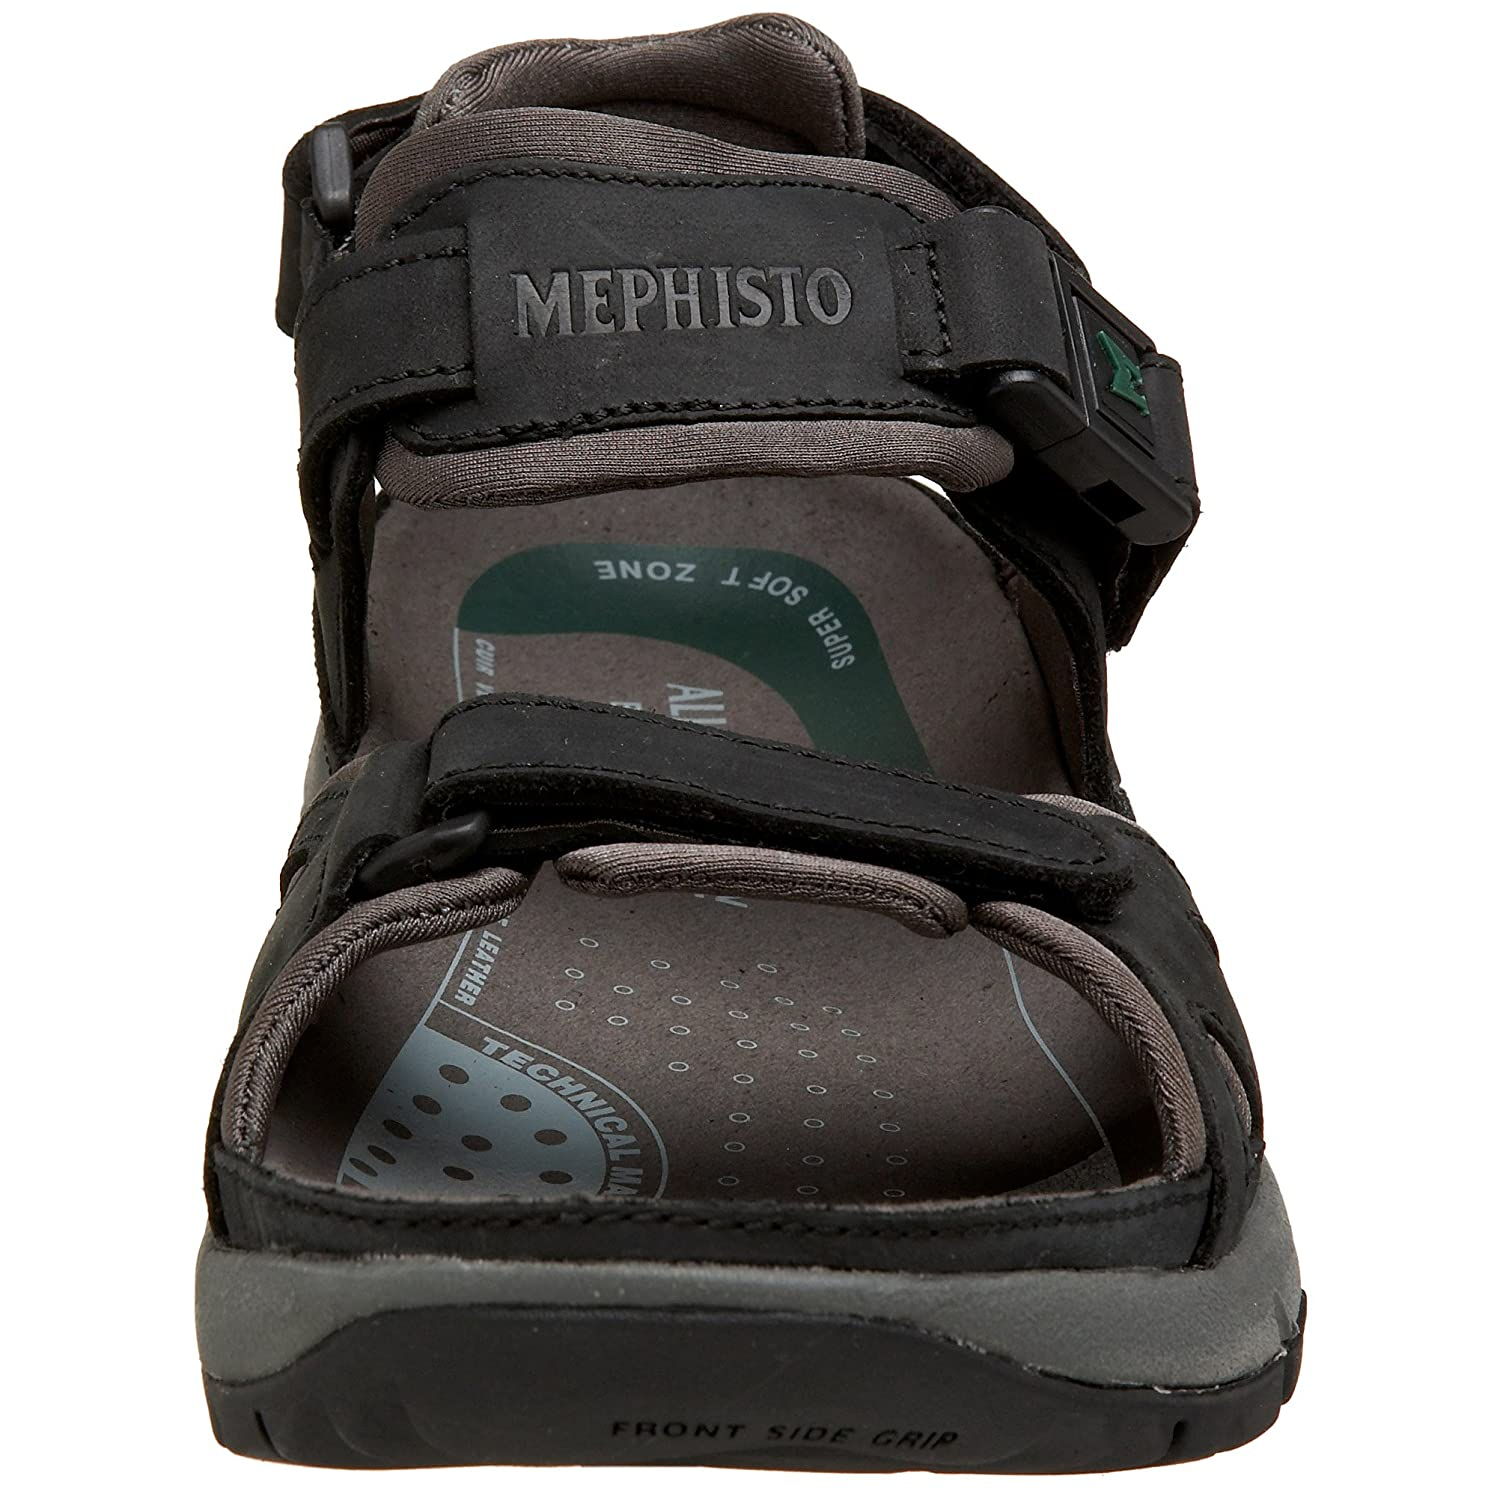 6483ab022c8b Allrounder by Mephisto Men s Alligator Sandal  Amazon.ca  Shoes   Handbags